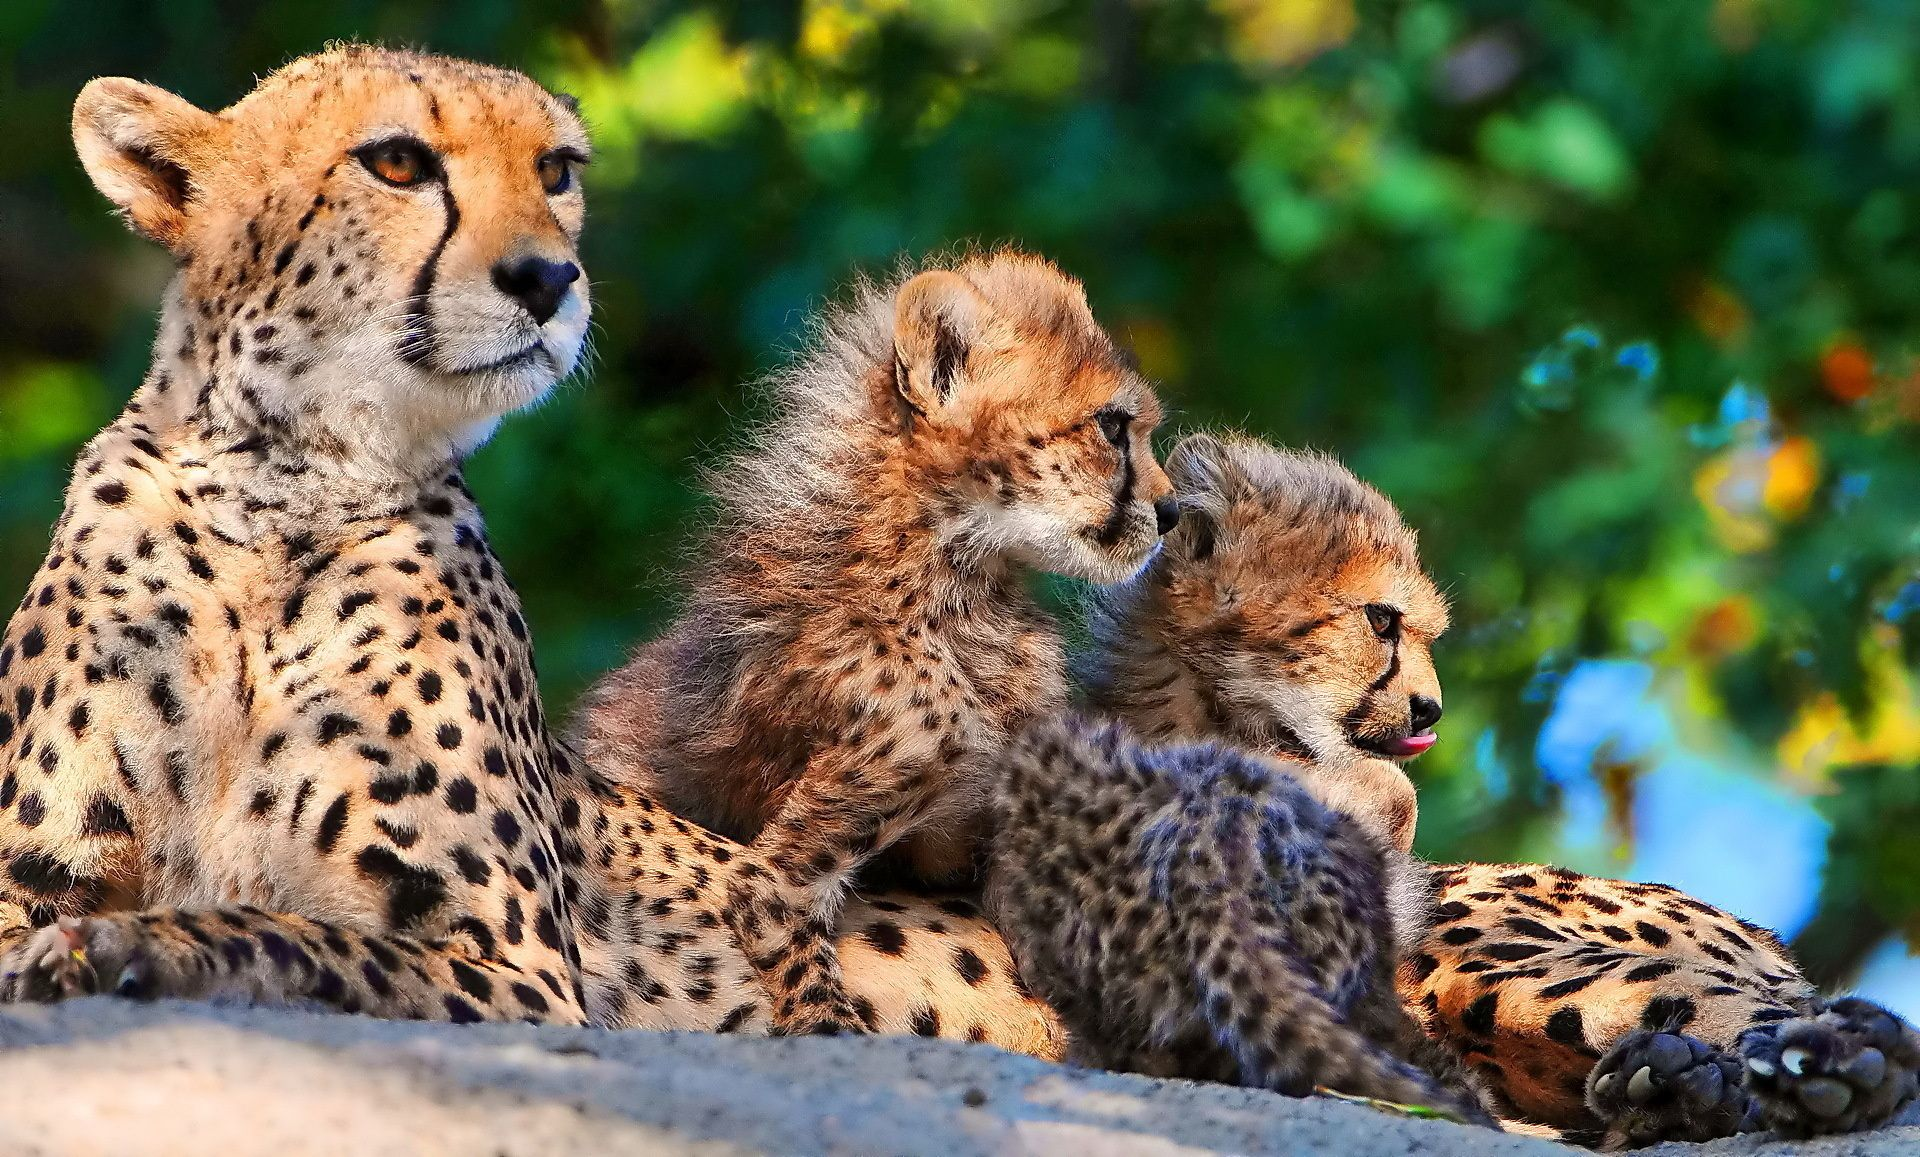 Cheetah Backgrounds Free Download Wallpapers Backgrounds Images Art Photos Cheetah Pictures Cheetah Wallpaper Baby Cheetahs